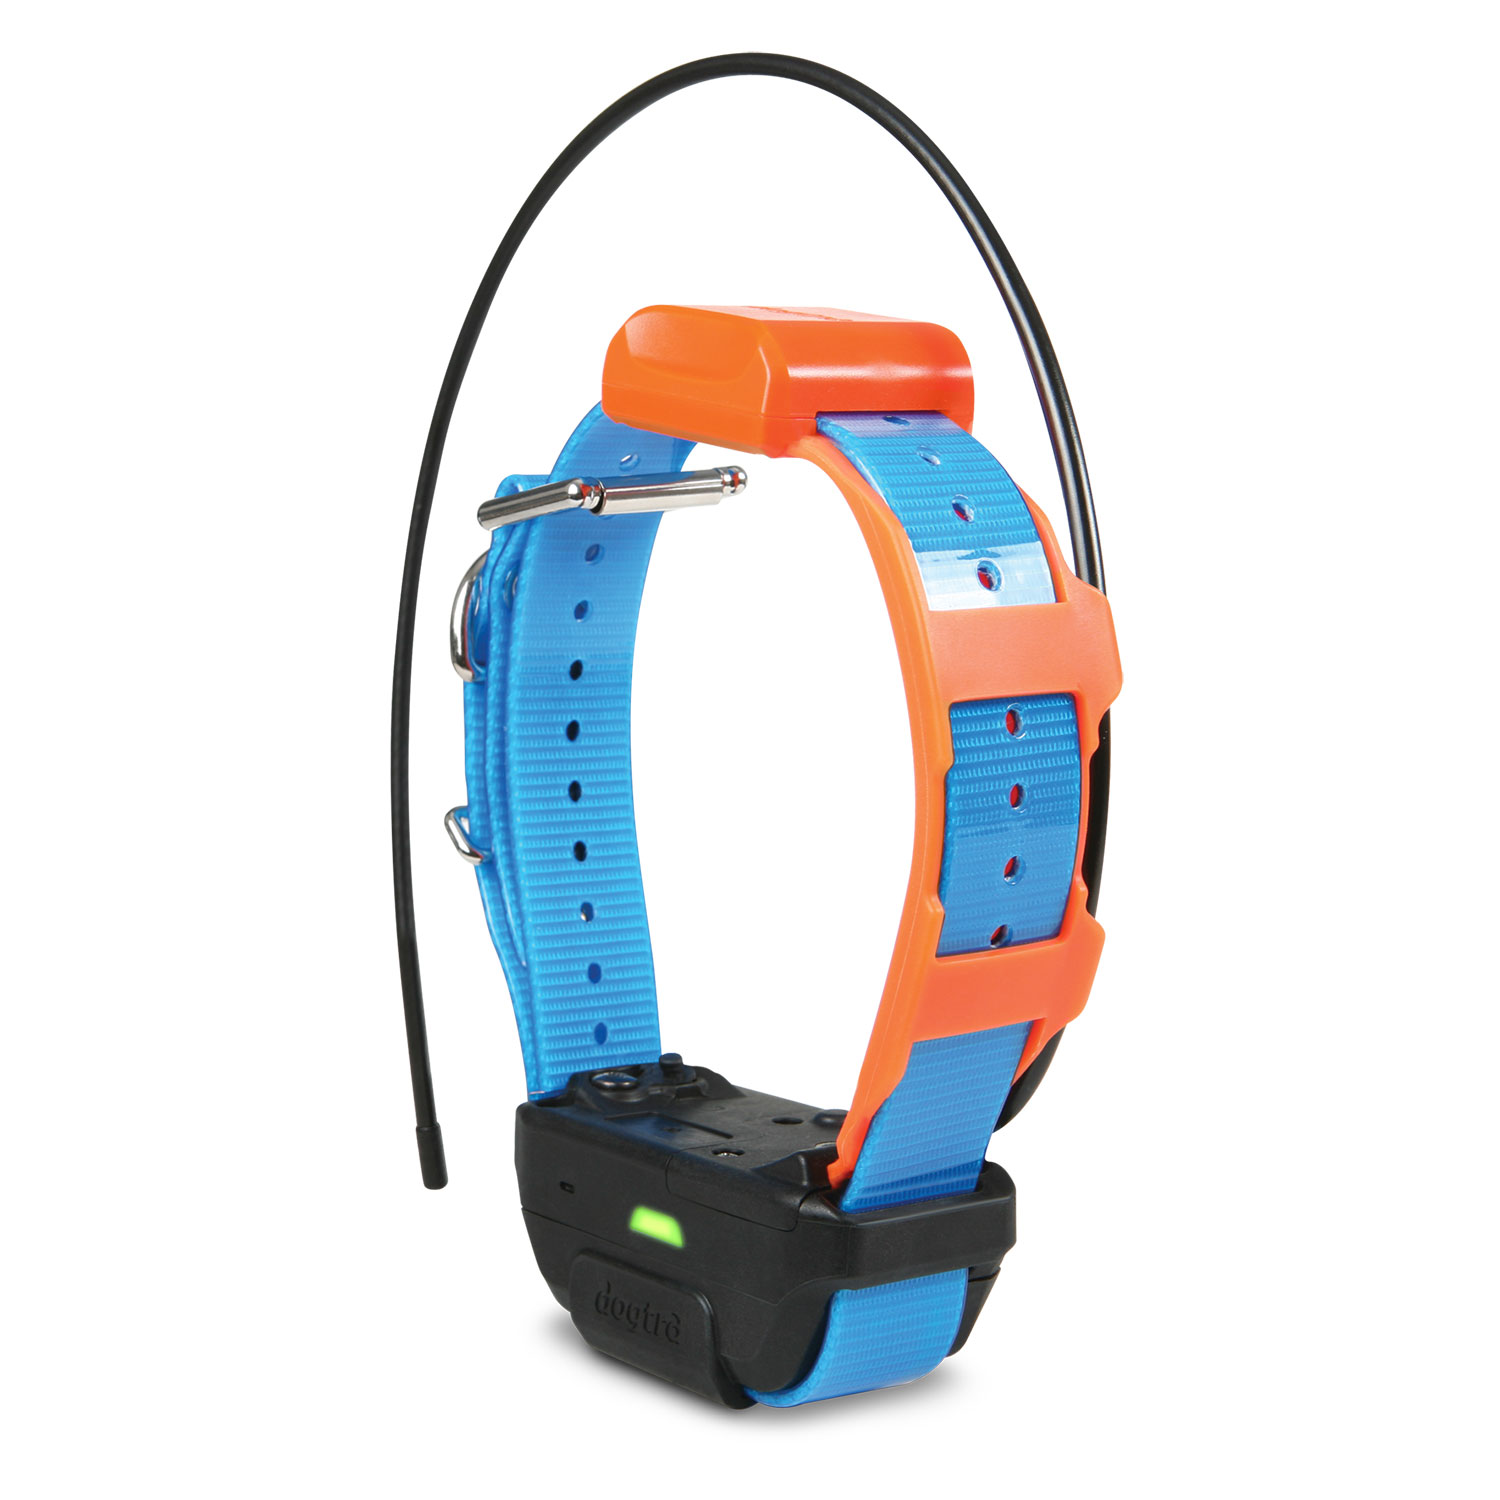 Dogtra GPS Tracking and E-Collar for Remote DOG Training-Blue Pathfinder Tracking Only Collar